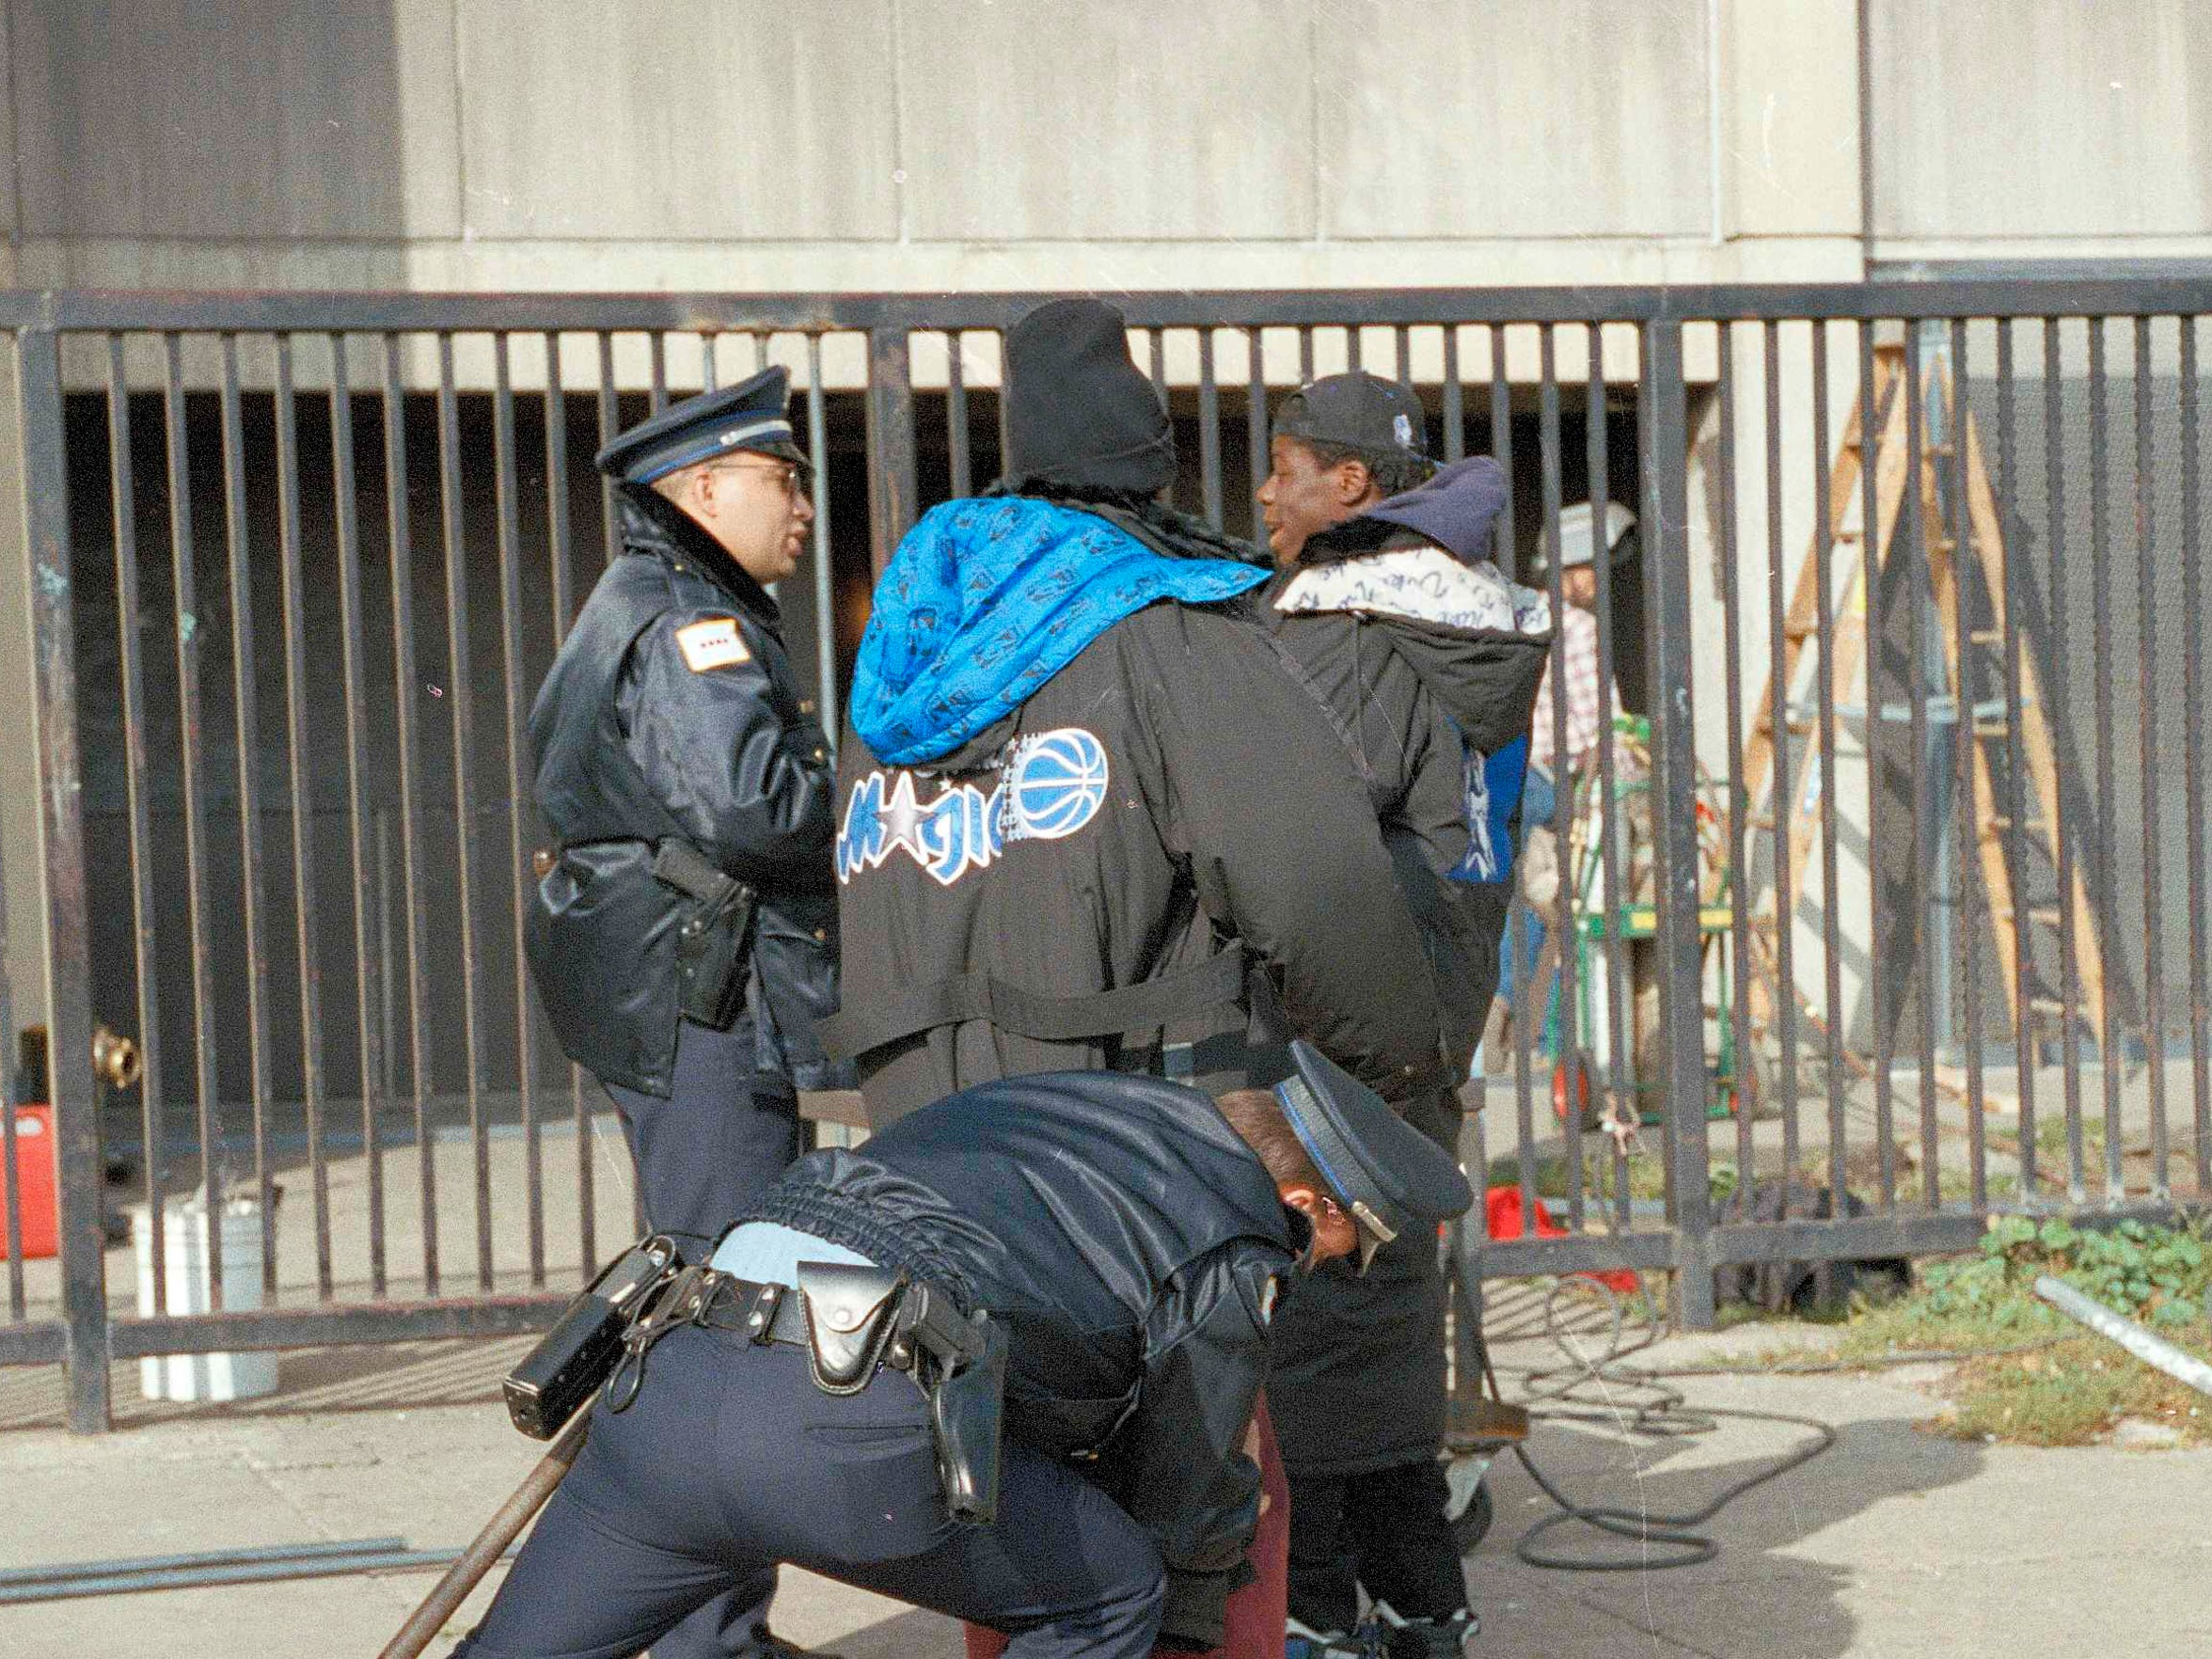 Chicago police officers conduct an emergency inspection